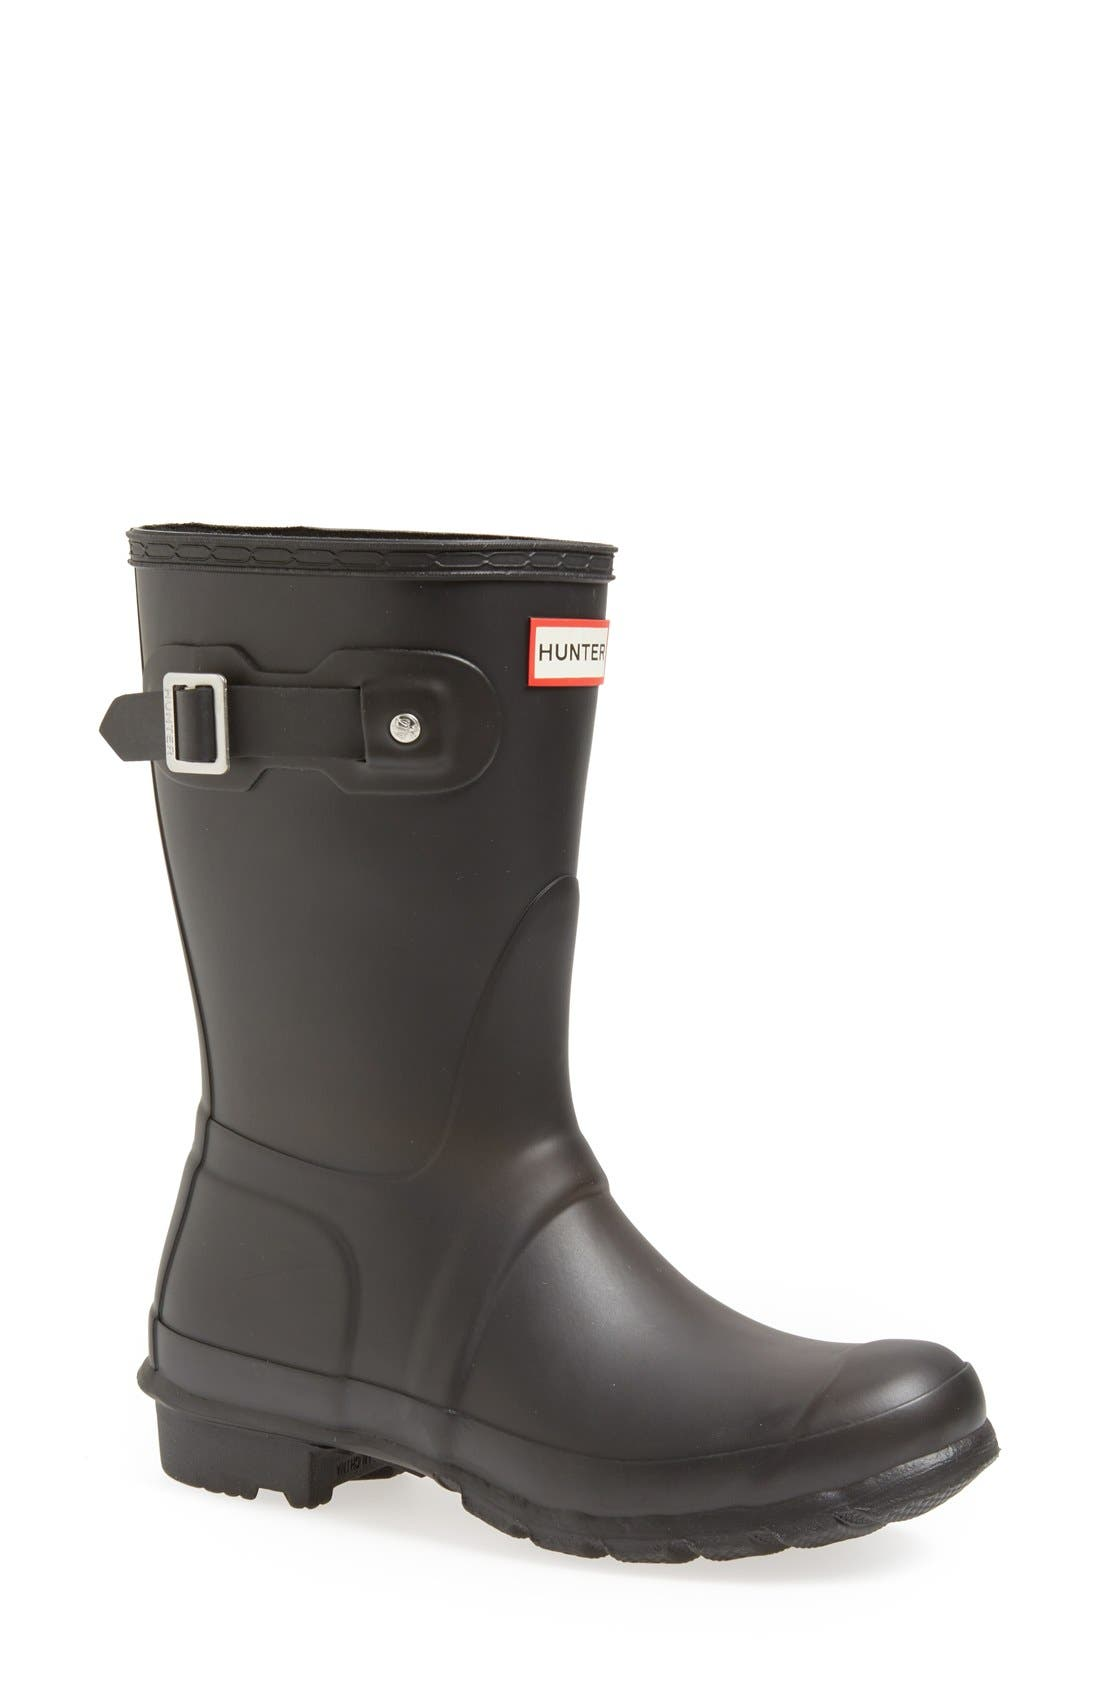 Main Image - Hunter 'Original Short' Rain Boot (Women)